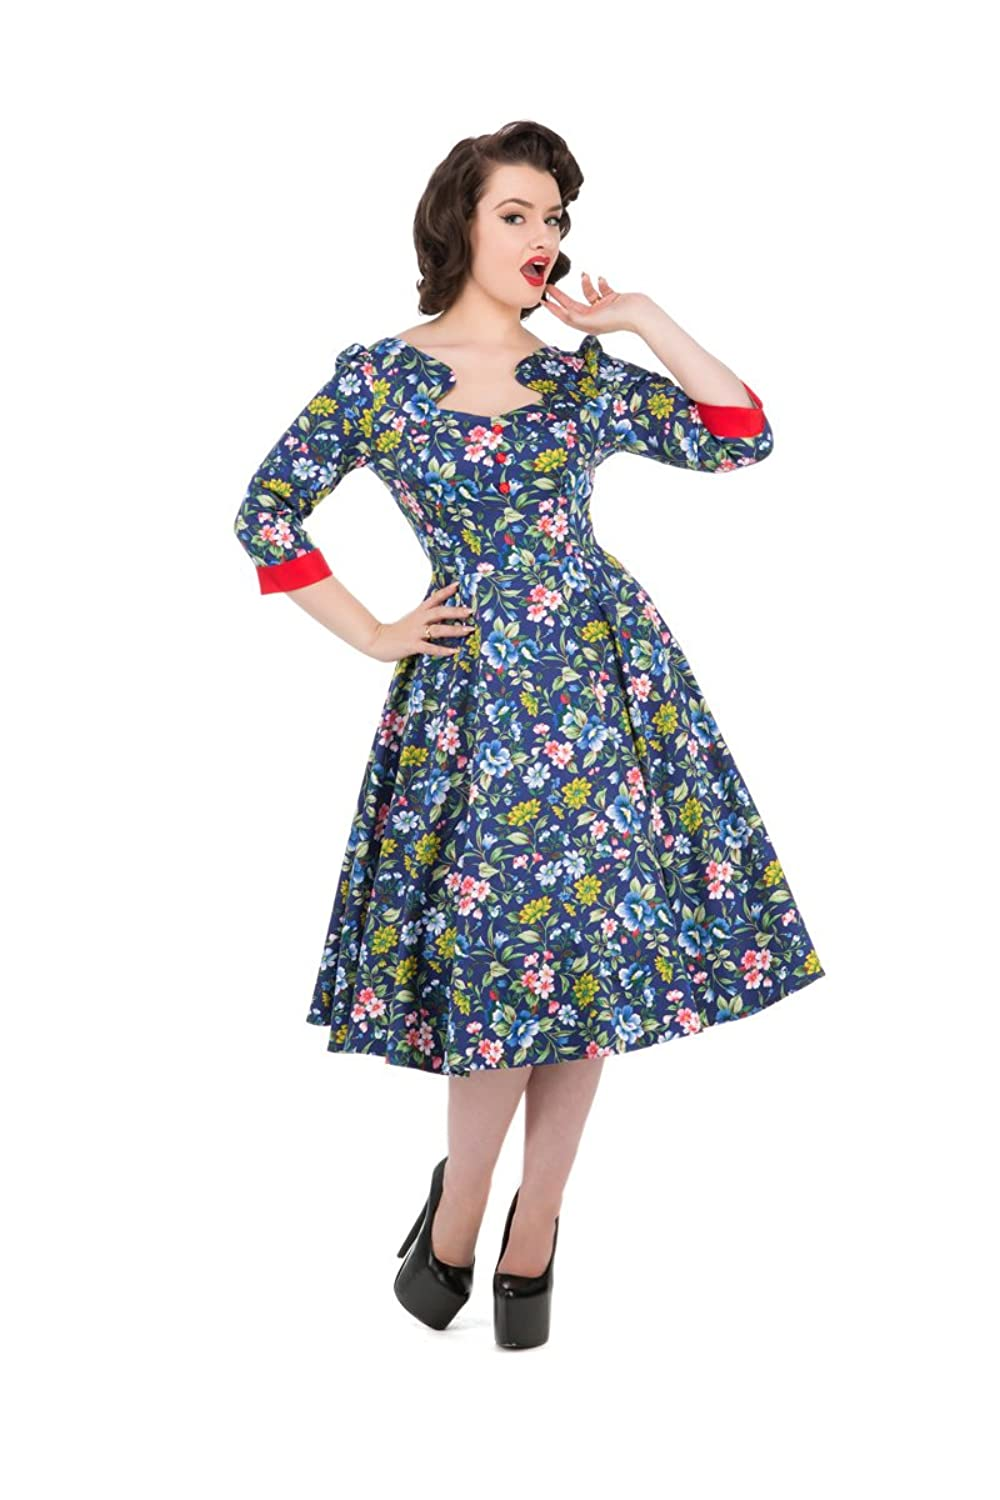 Plus Size Swing Dresses, Vintage Dresses Hearts & Roses Oxford Ella Swing Dress (Shipped from US and US Sizes) $54.88 AT vintagedancer.com